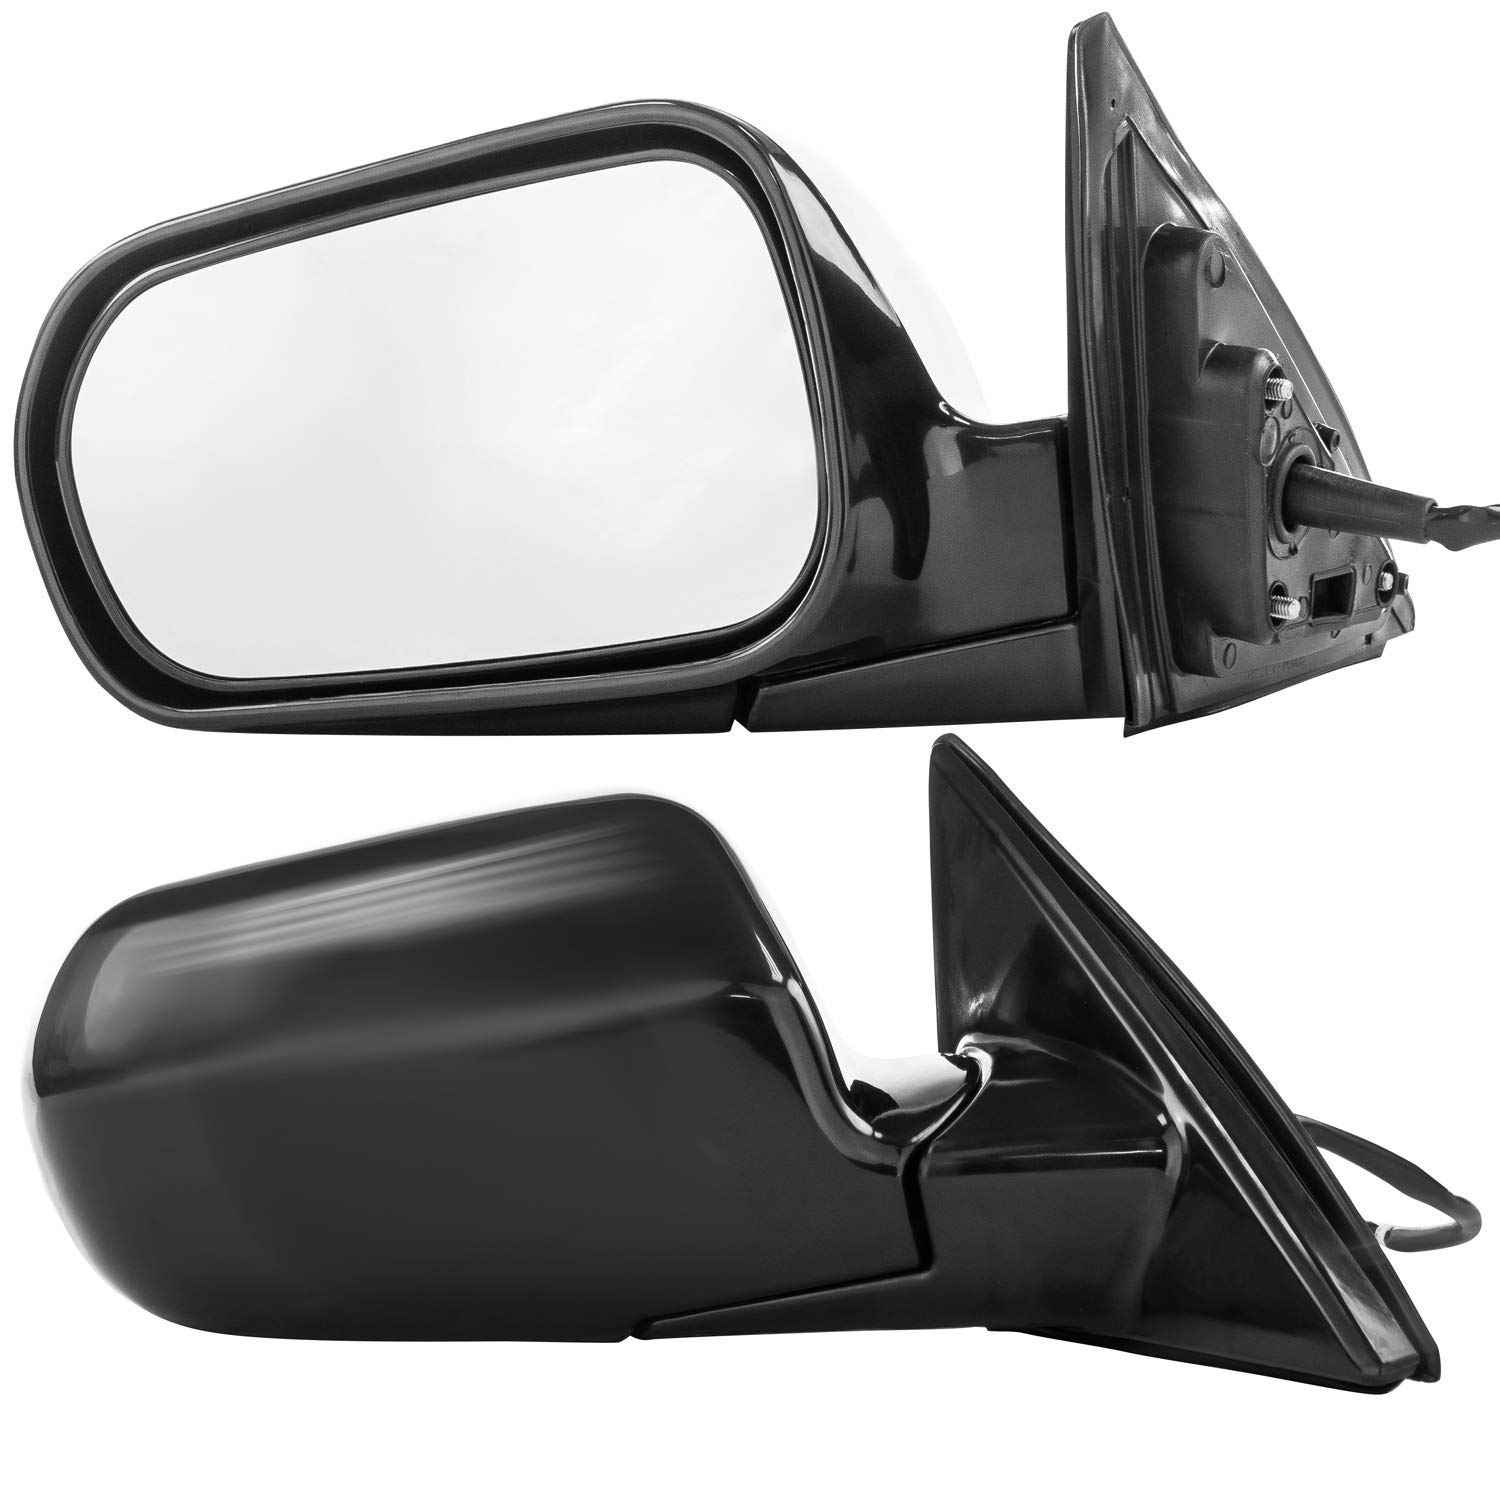 Dependable Direct Driver and Passenger Side Unpainted Non-Heated Folding Door Mirrors for Honda Accord Sedan (1998 1999 2000 2001 2002) HO1321125